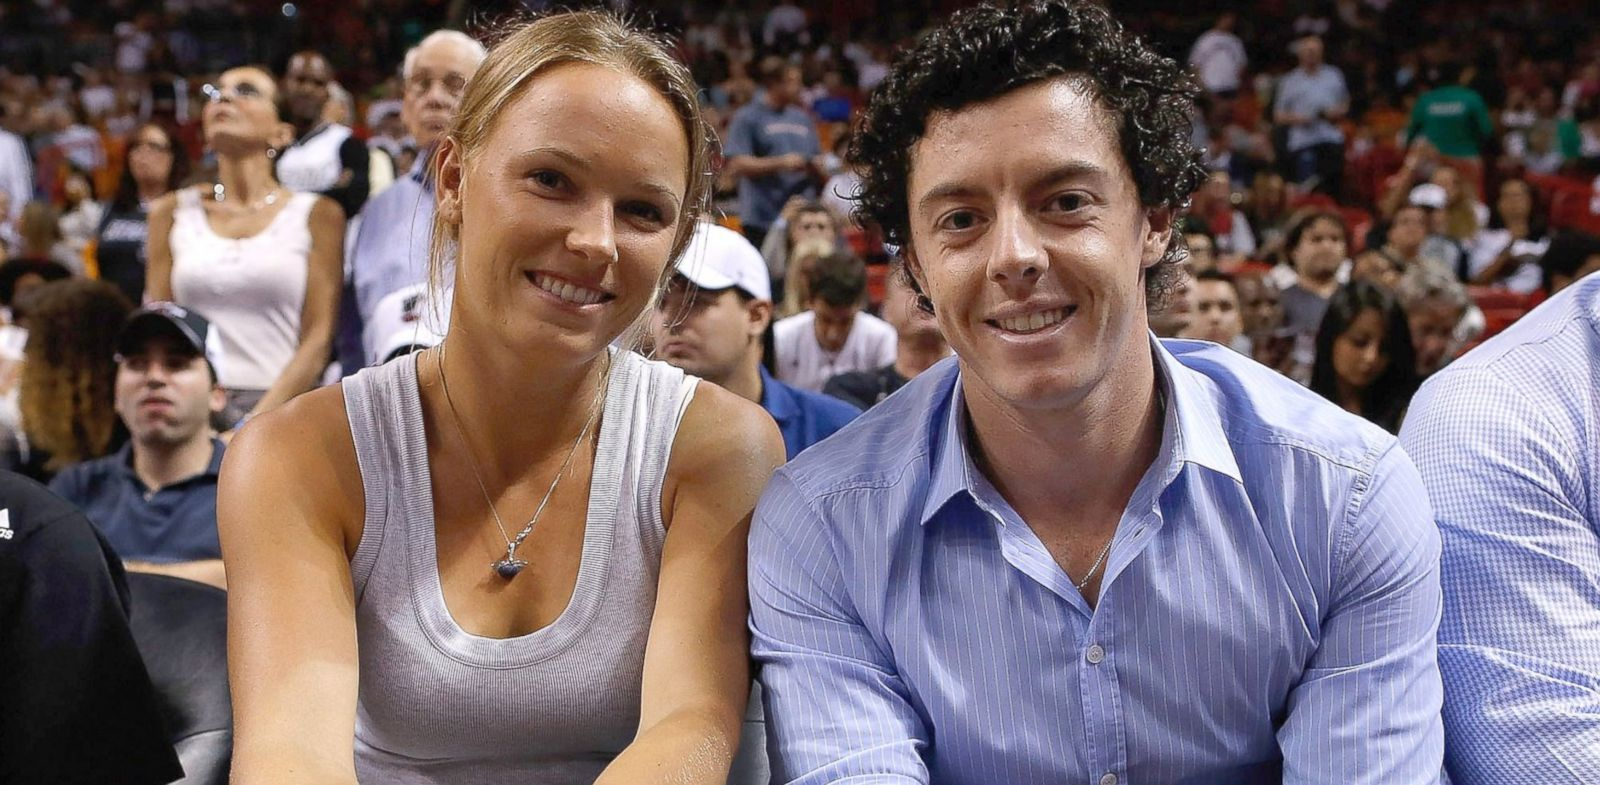 PHOTO: Caroline Wozniacki and Rory McIlroy watch a game between the Miami Heat and Washington Wizards, Dec. 15, 2012, in Miami, Fla.